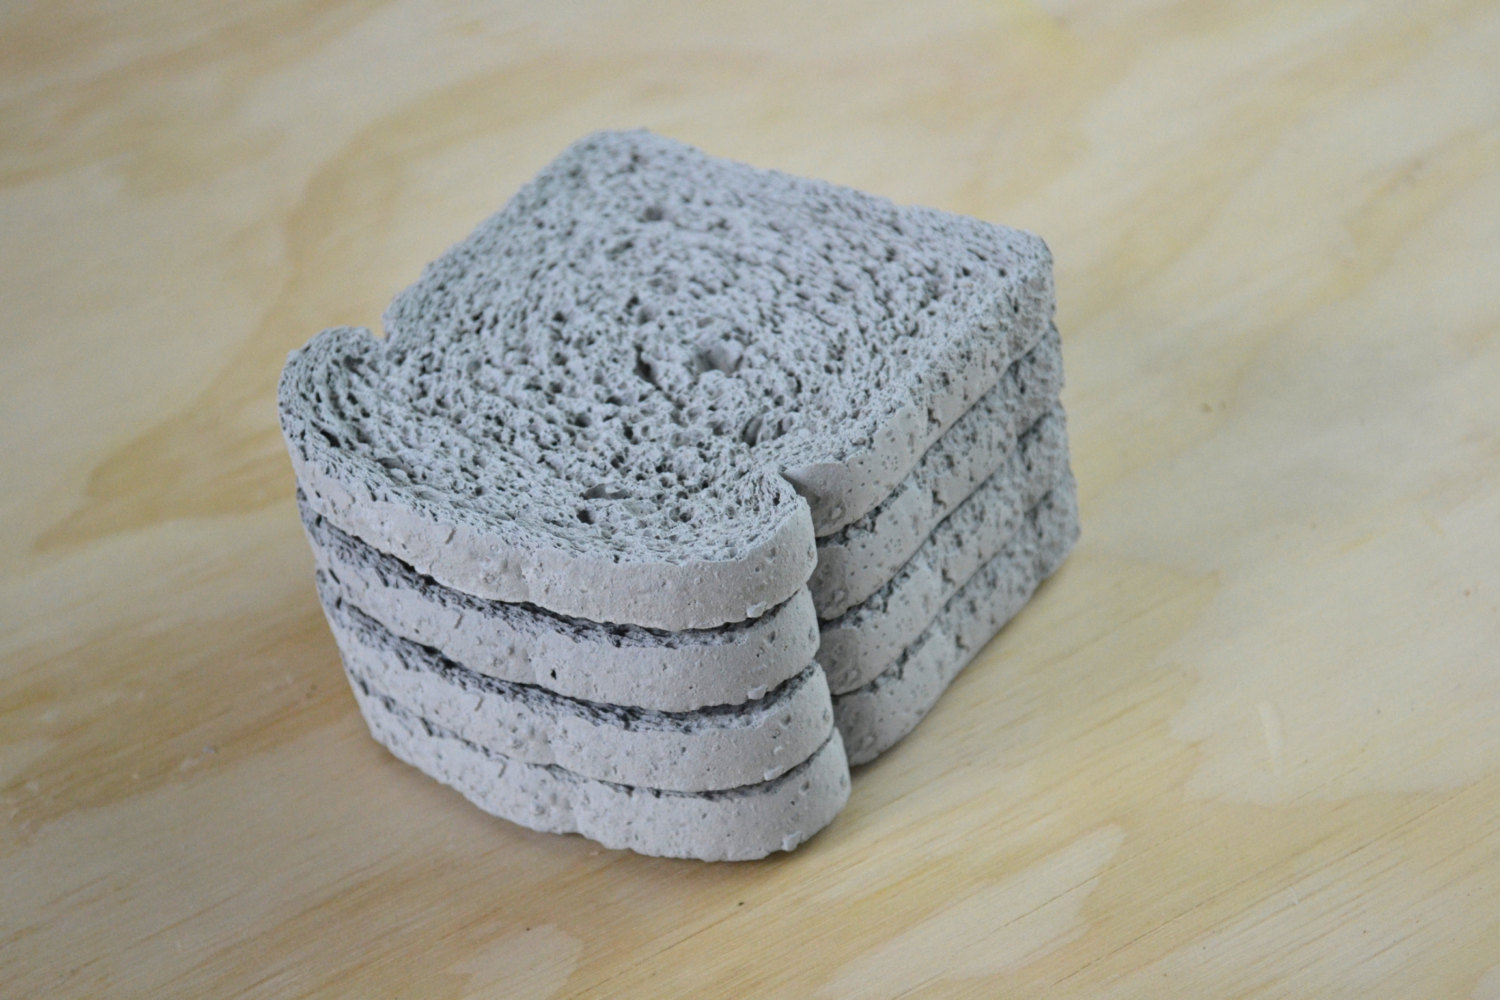 Handmade coasters hunting handmade for How to make concrete coasters